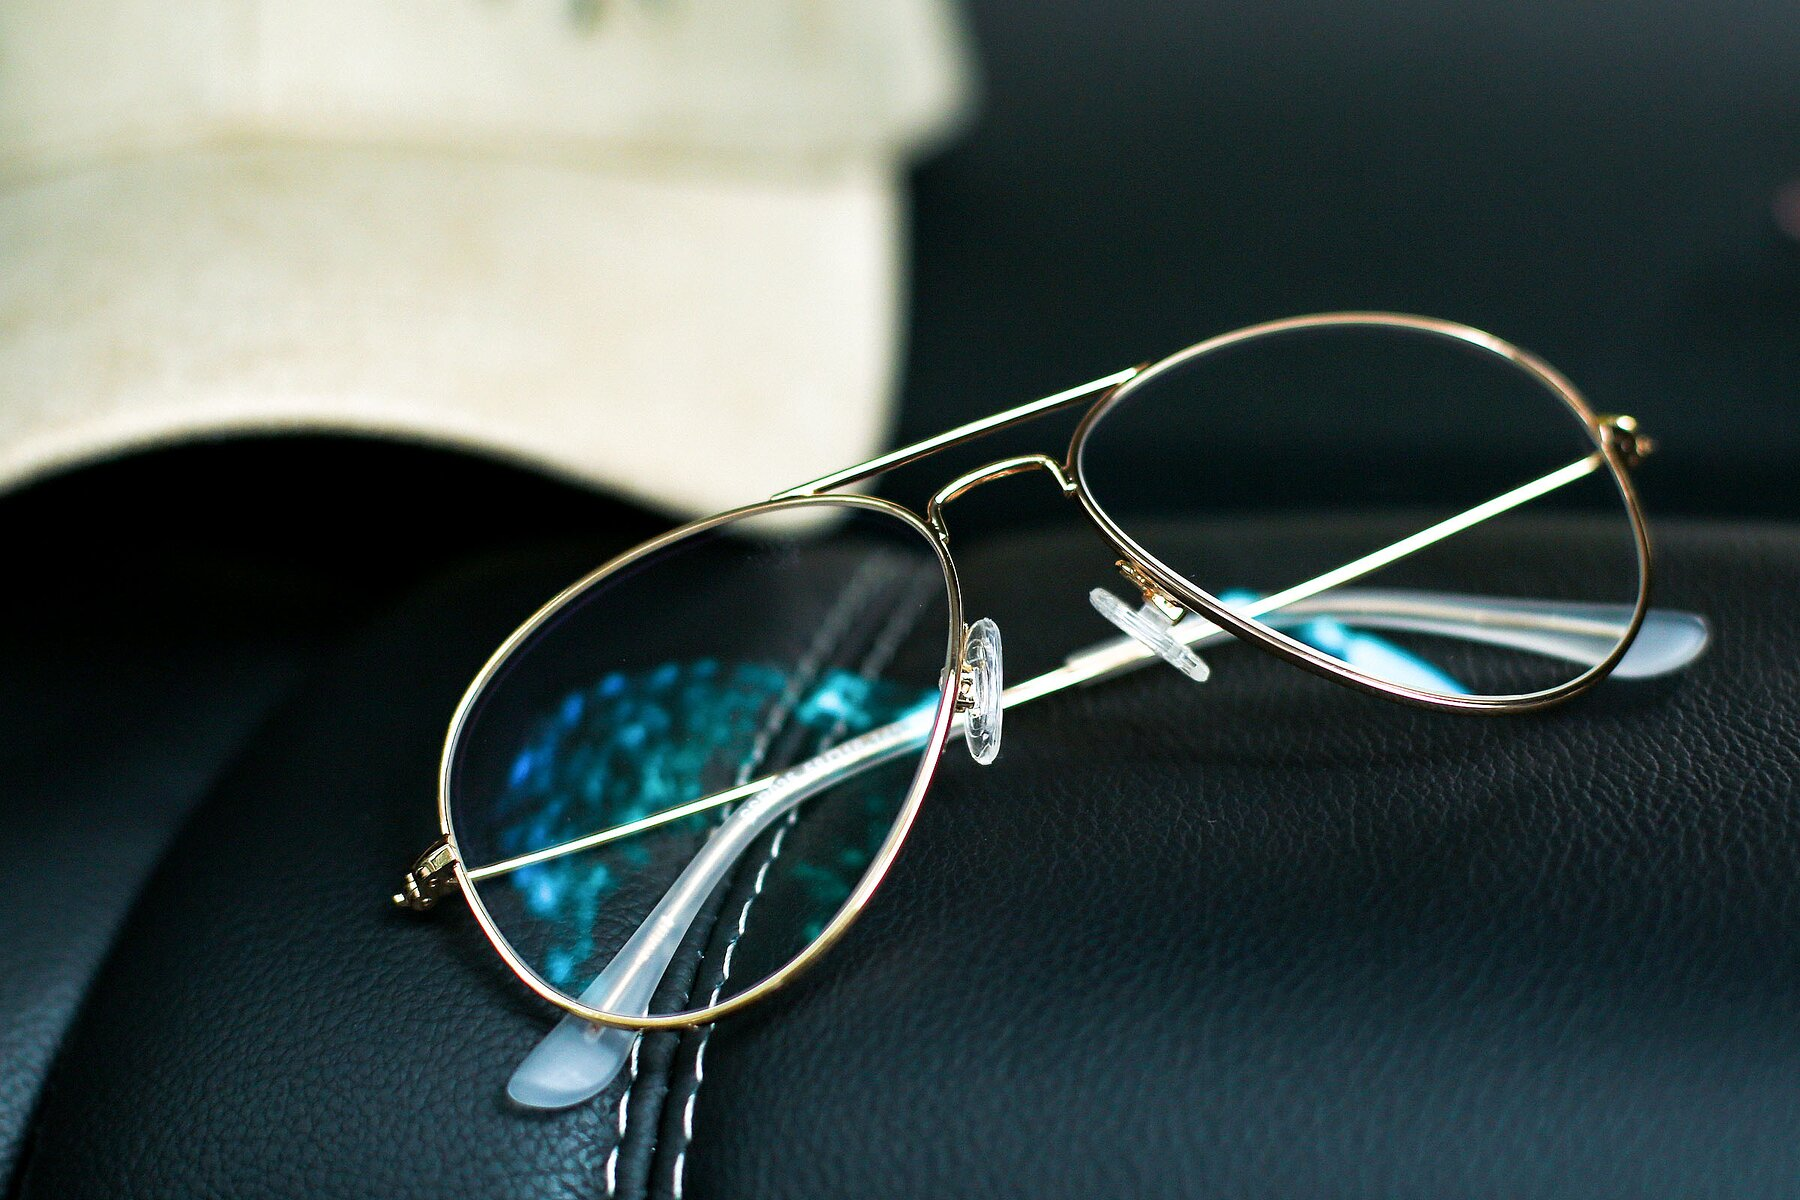 Lifestyle photography #3 of Yesterday in Shiny Gold with Clear Eyeglass Lenses